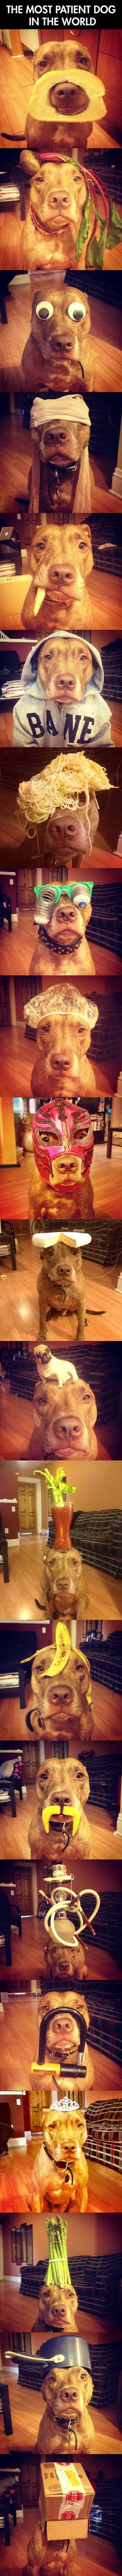 Meet The Most Patient Dog In The World – 23 Pics